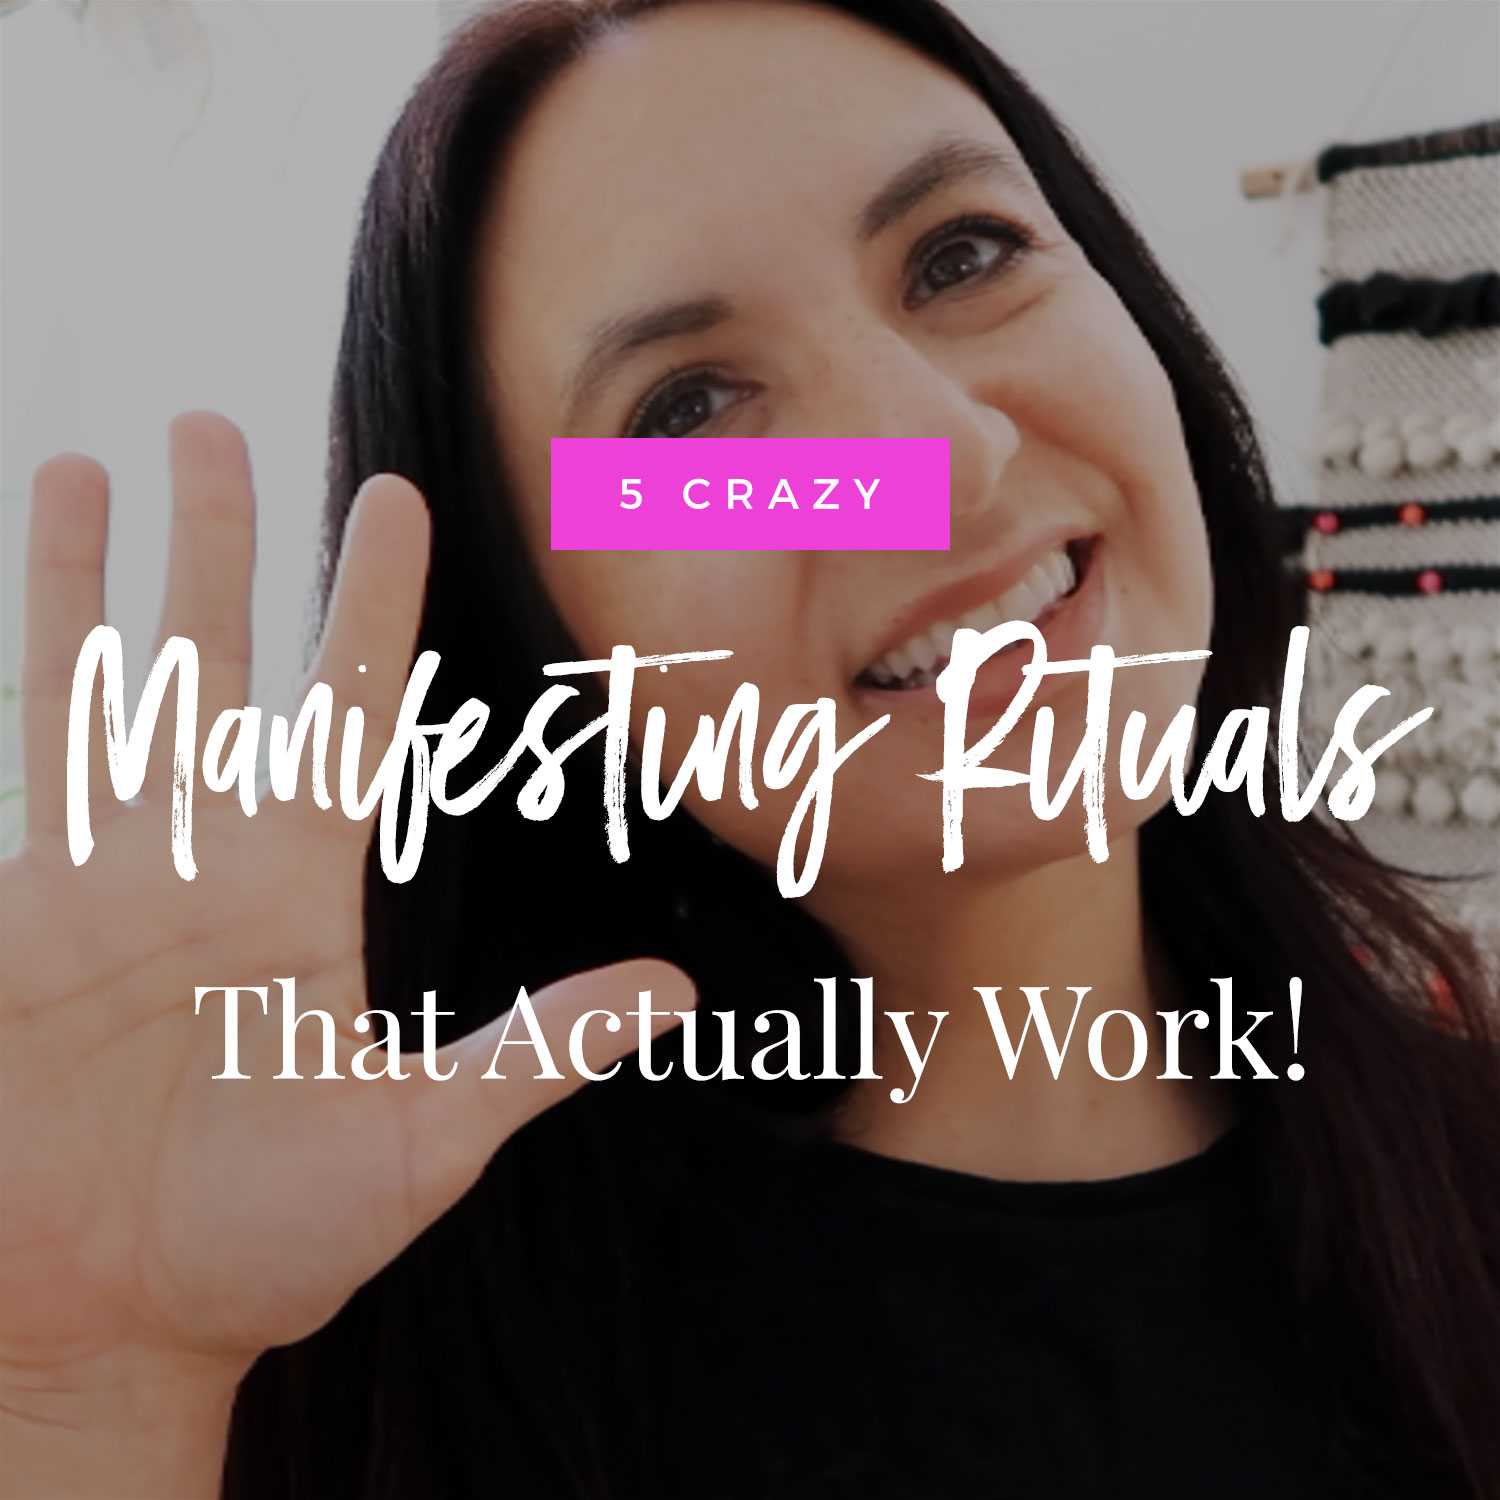 5 Crazy Manifesting Rituals That Actually Work!